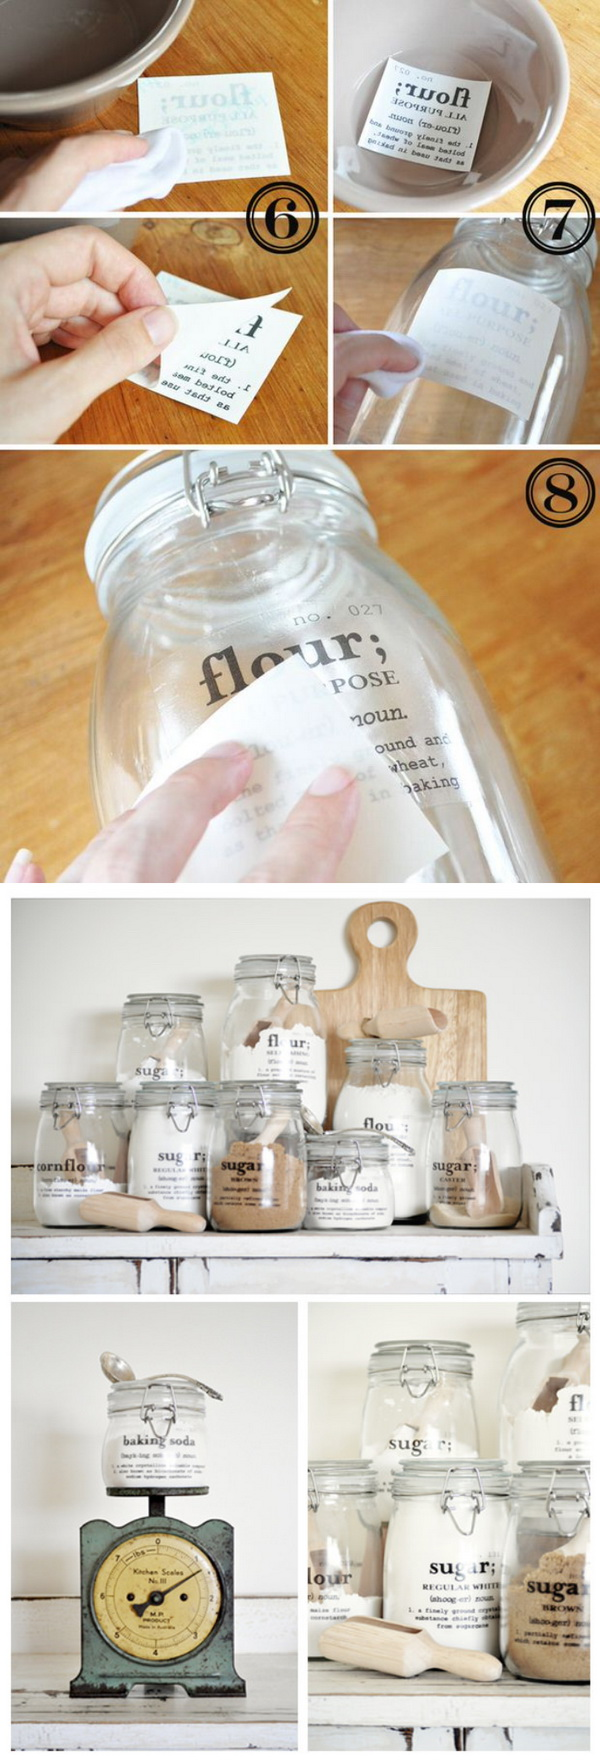 DIY Kitchen Containers with Labels. Print these pantry organization labels for free and add to your kitchen. Labels include recipe so everything can be stored in jars or air tight containers.